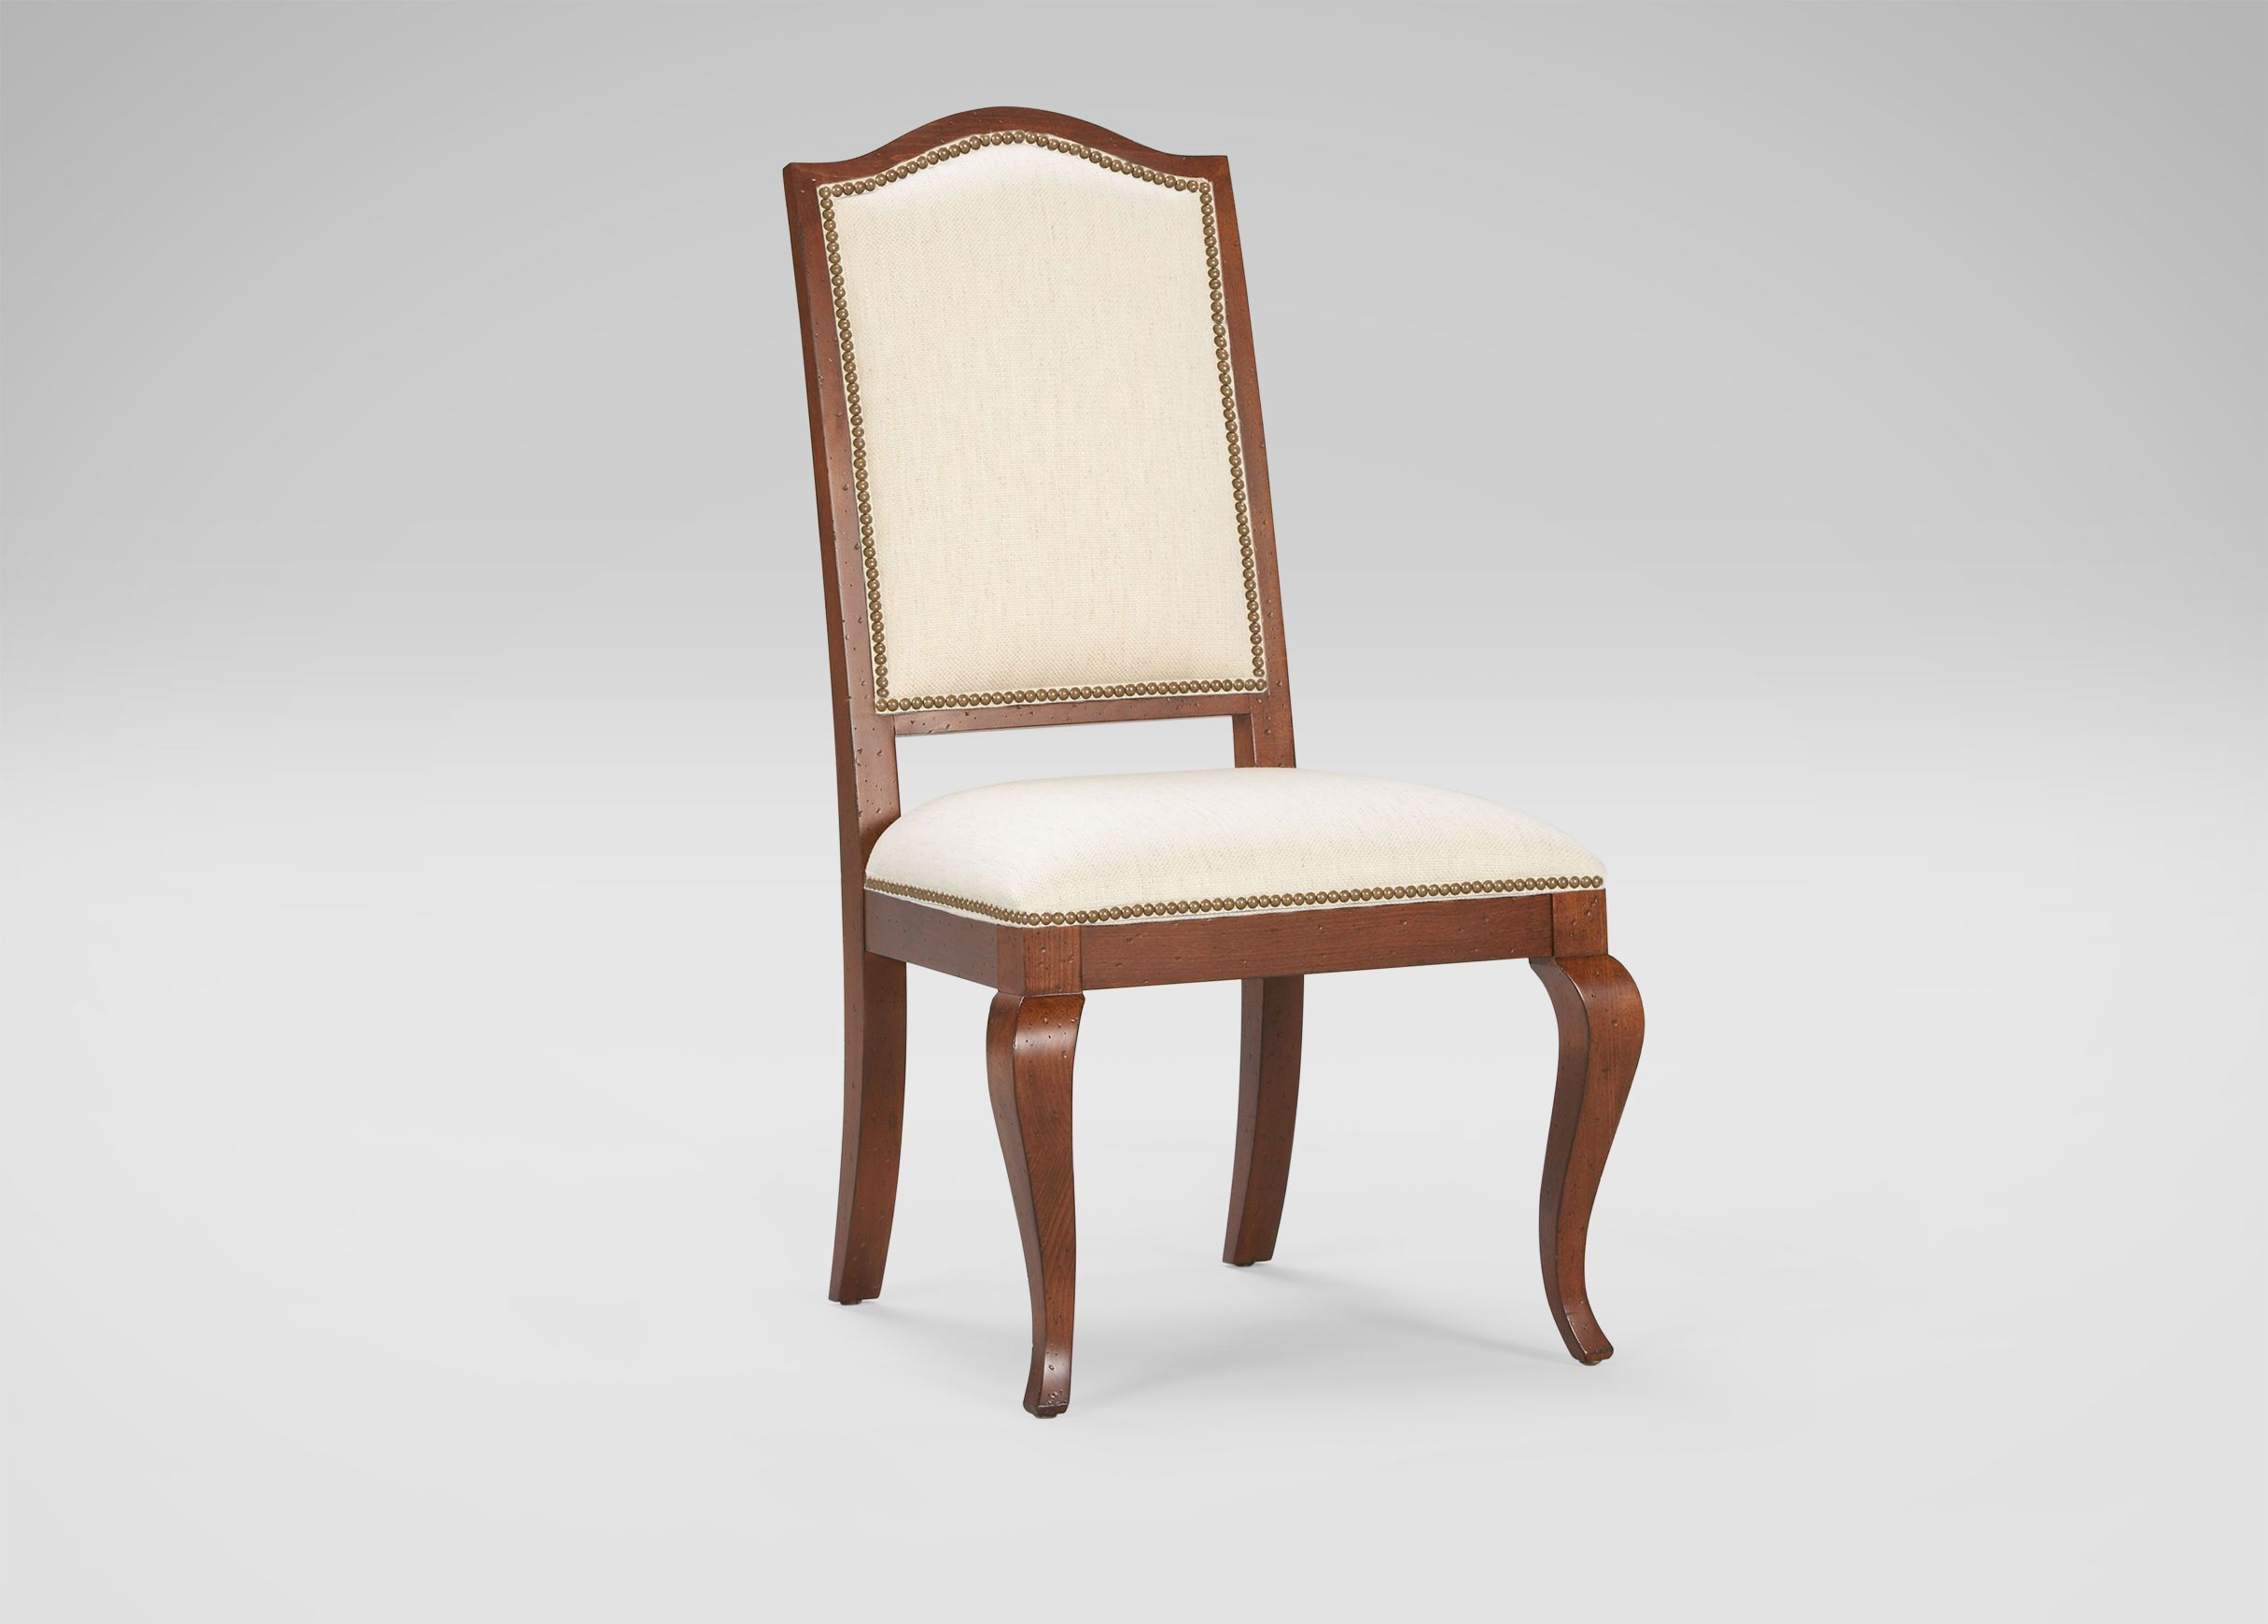 Magnificent Dining Chair With Cabriole Legs Google Search Side Gamerscity Chair Design For Home Gamerscityorg